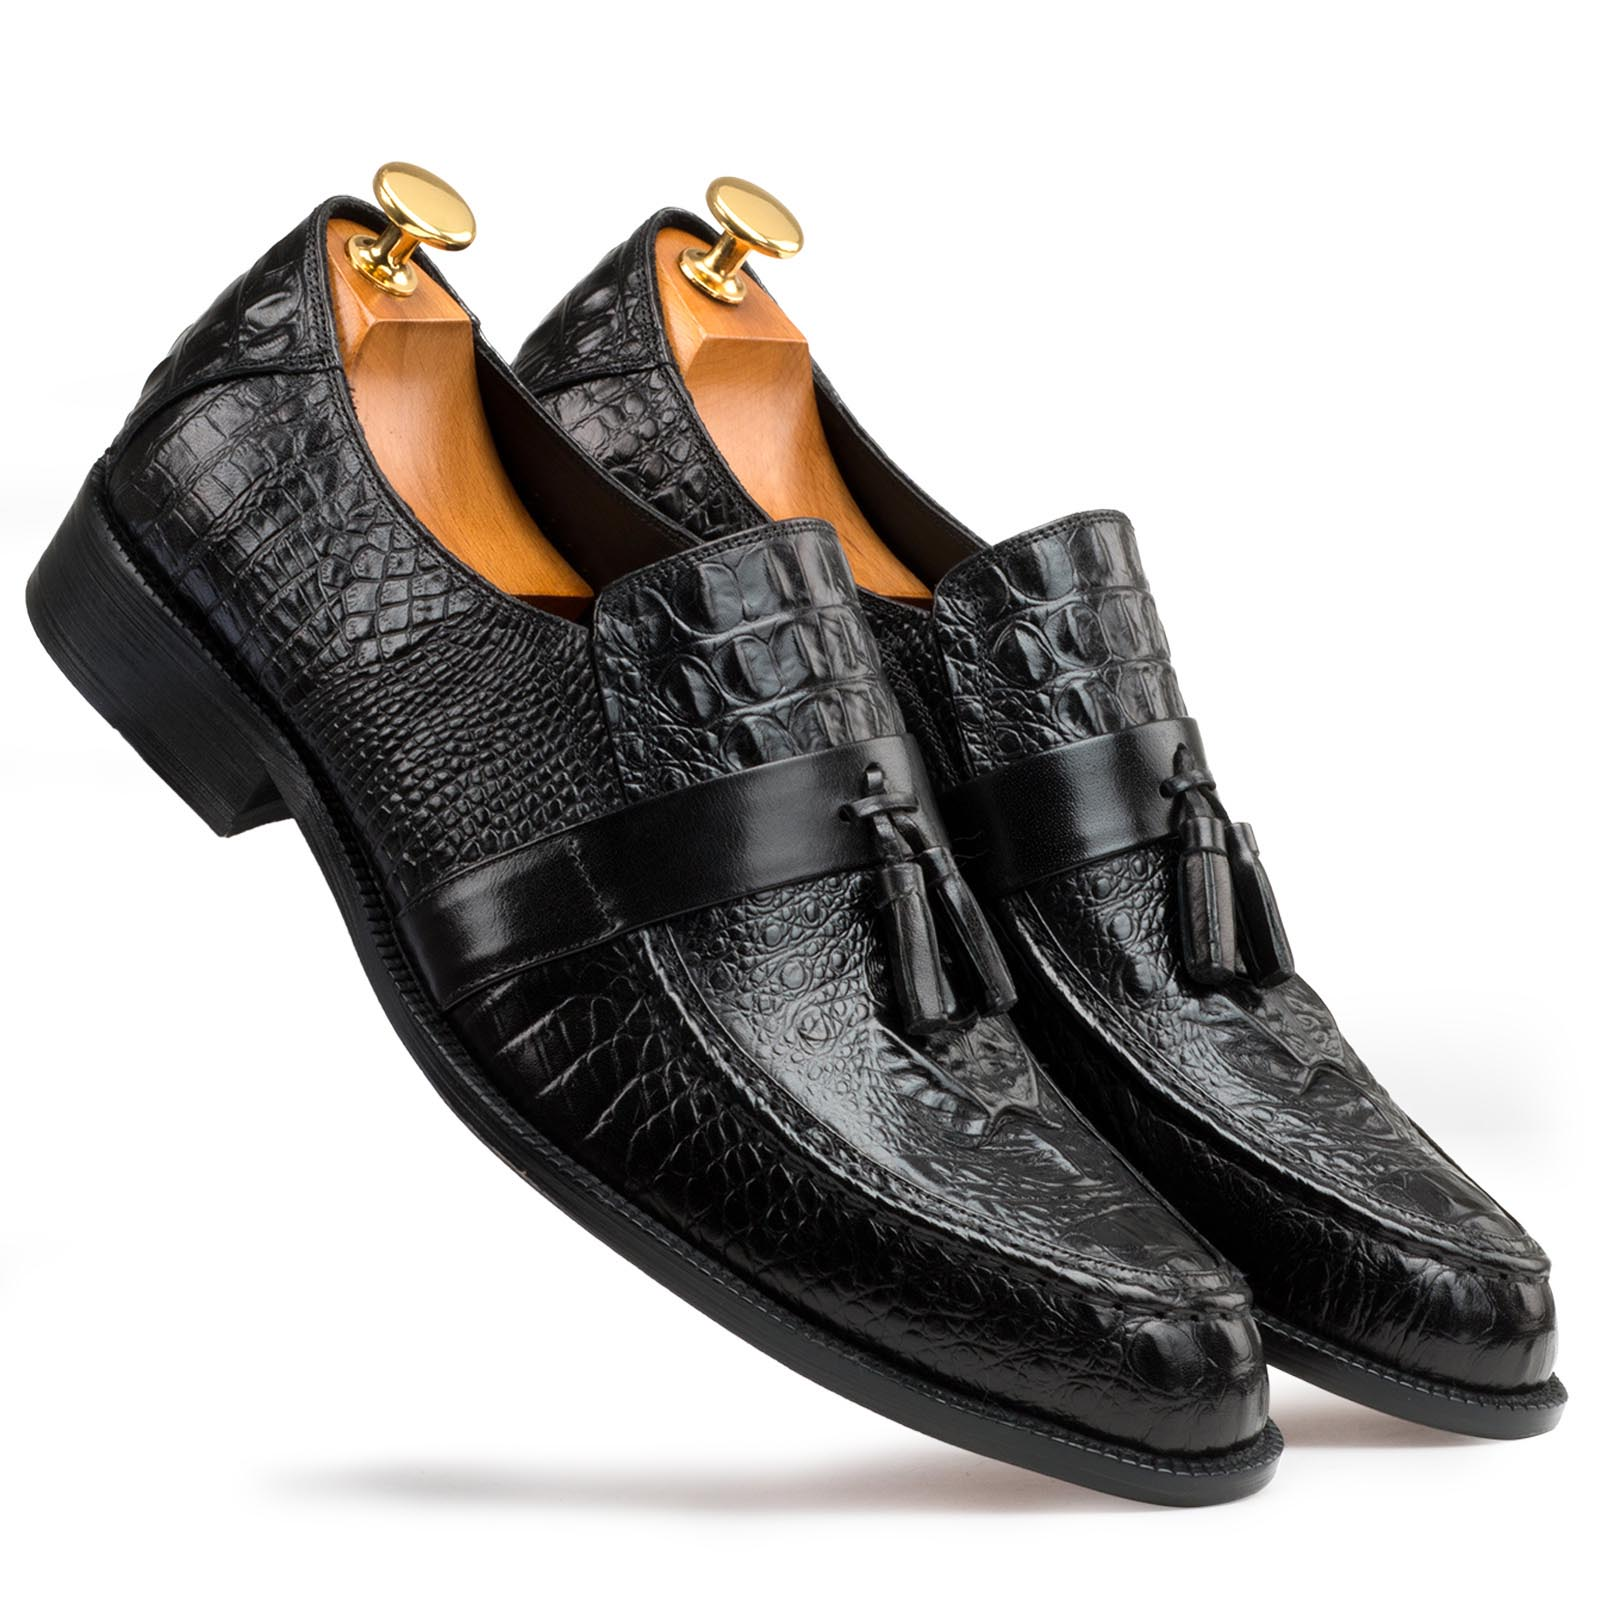 Black Croc-Textured Tassel Loafers